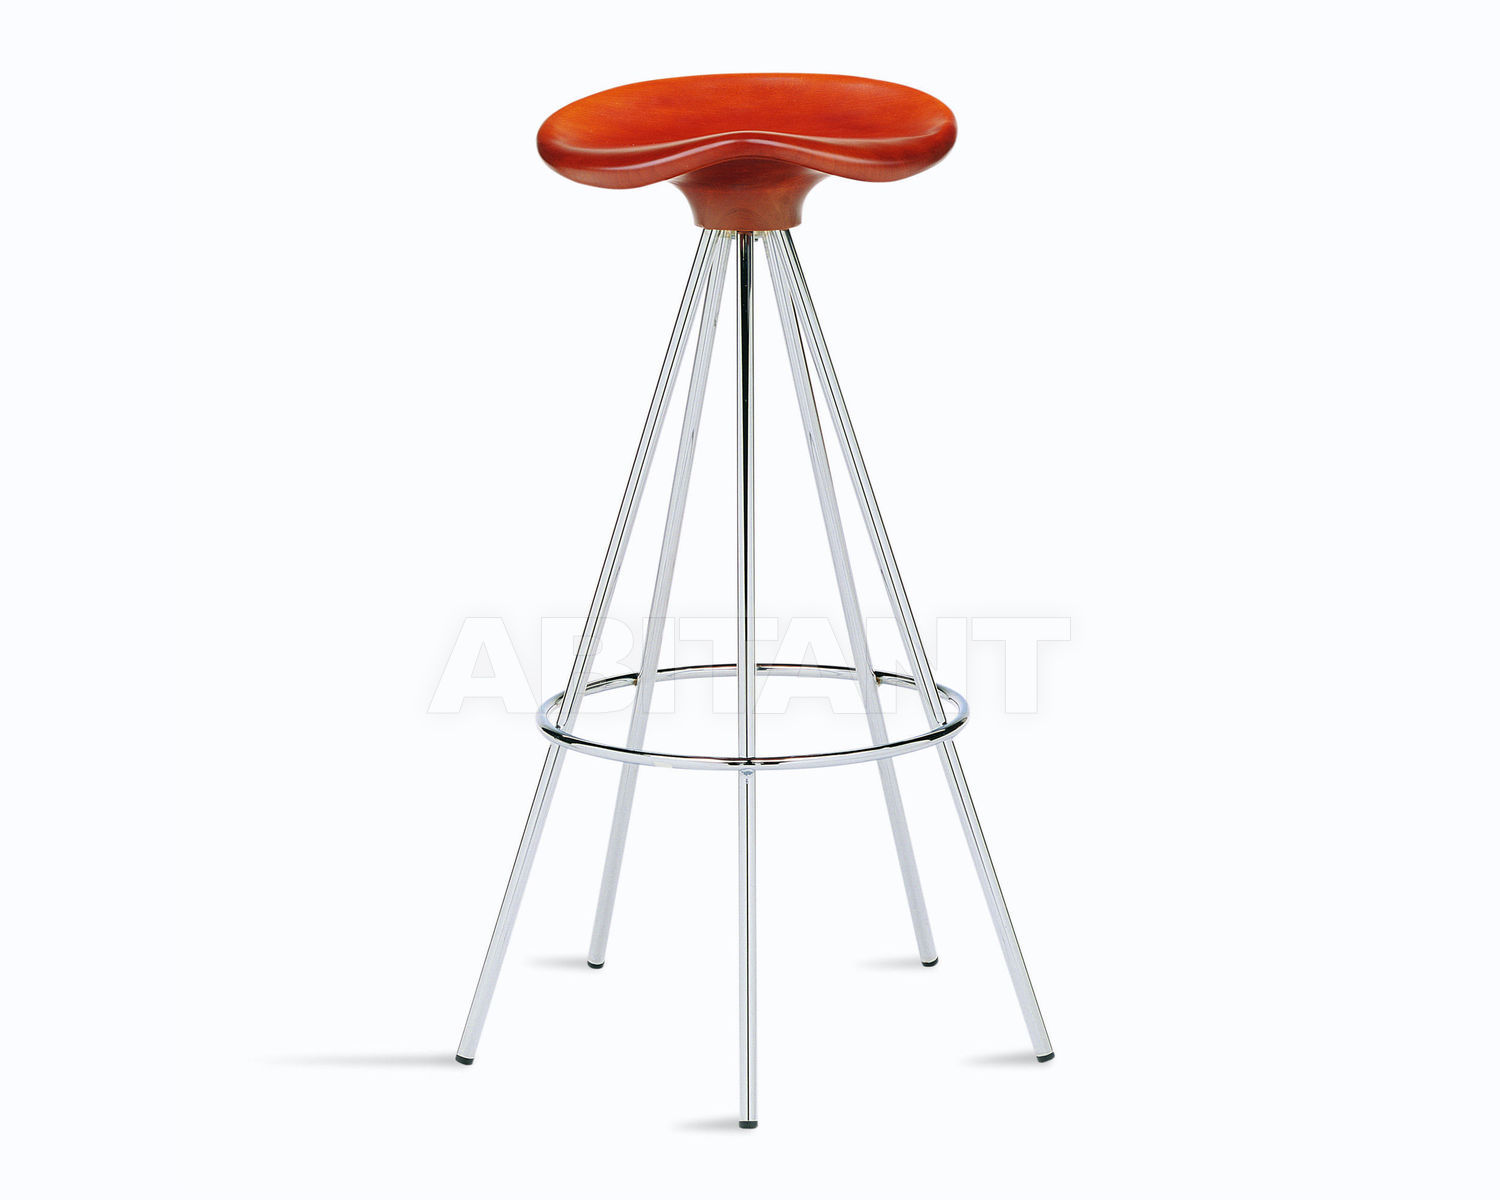 Купить Барный стул JAMAICA B.D (Barcelona Design) CHAIRS AND STOOLS JAMAICA H. 77